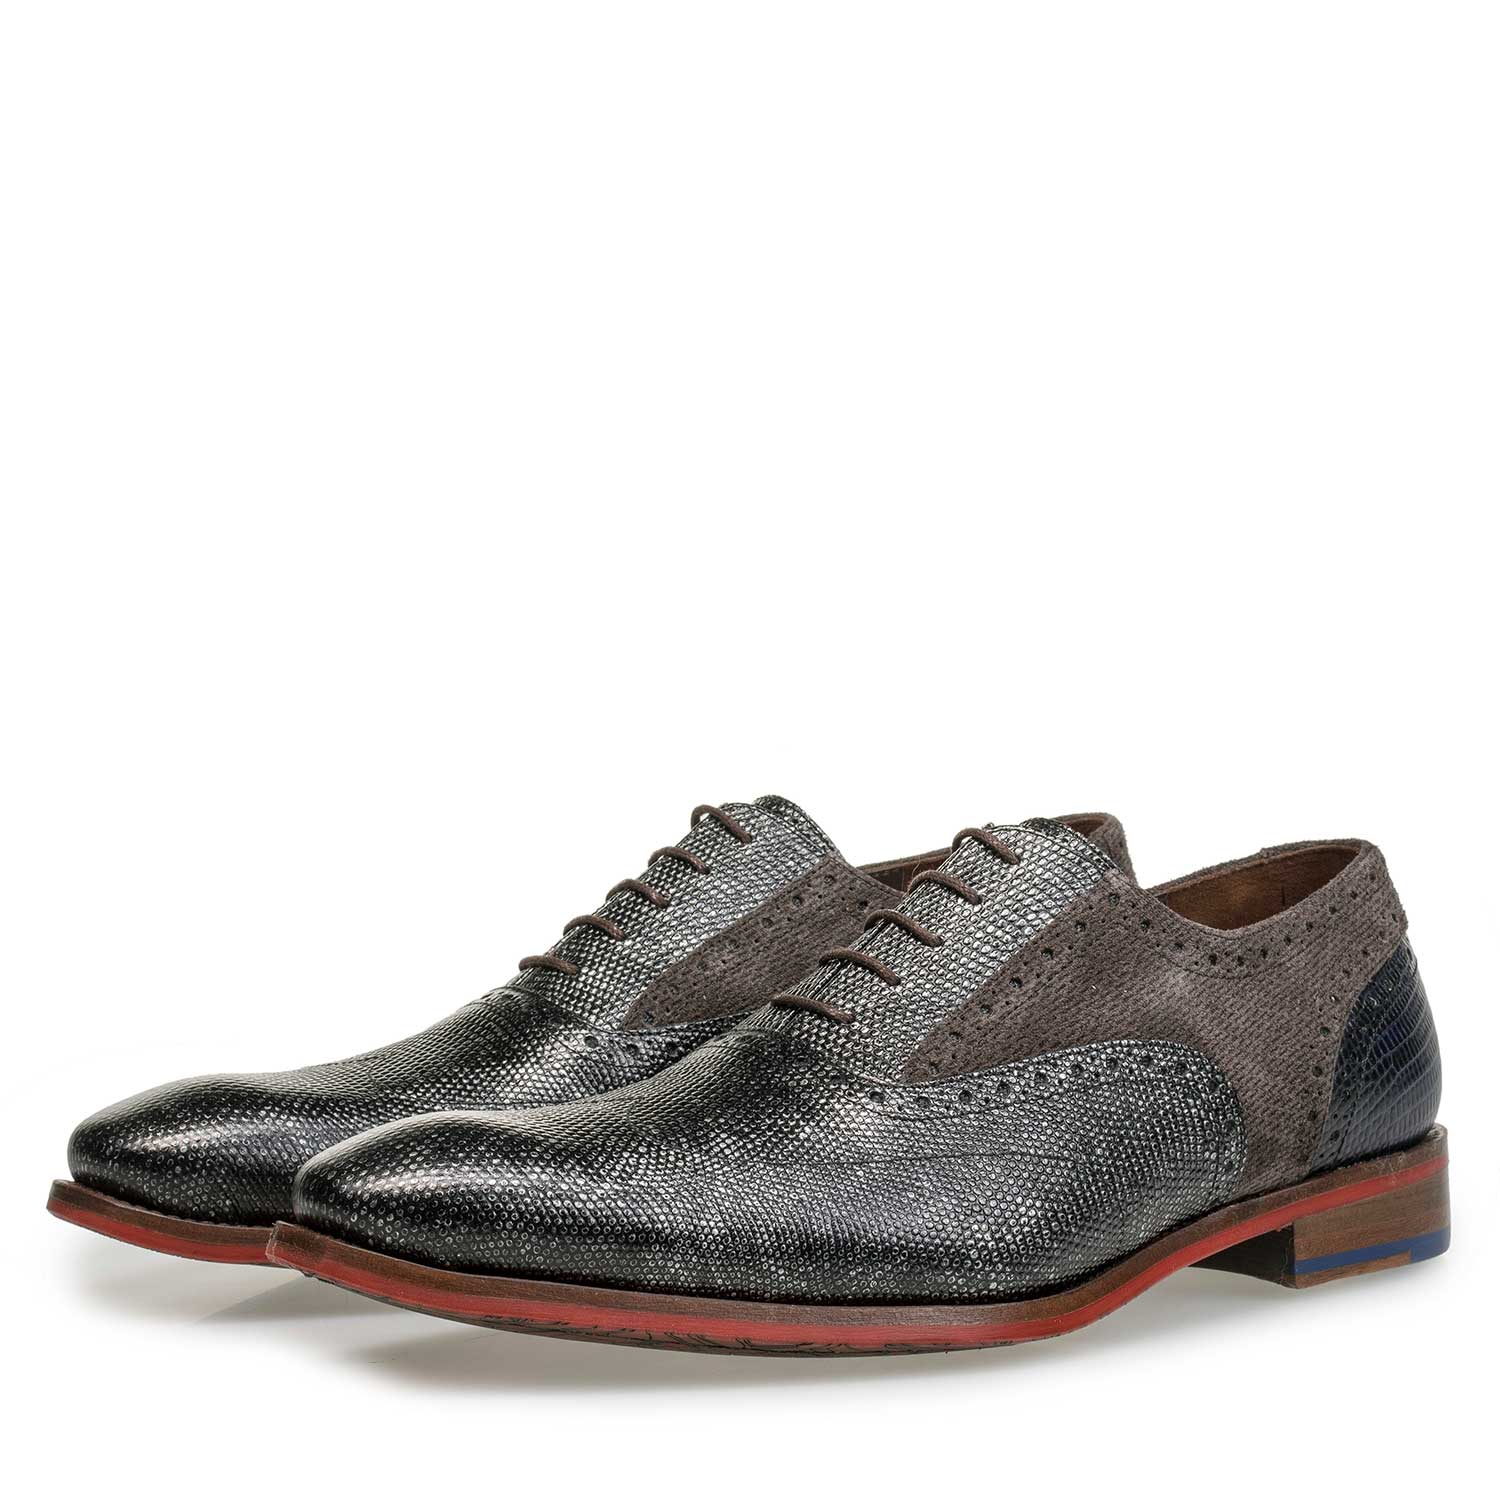 19117/01 - Grey Premium calf leather lace shoe